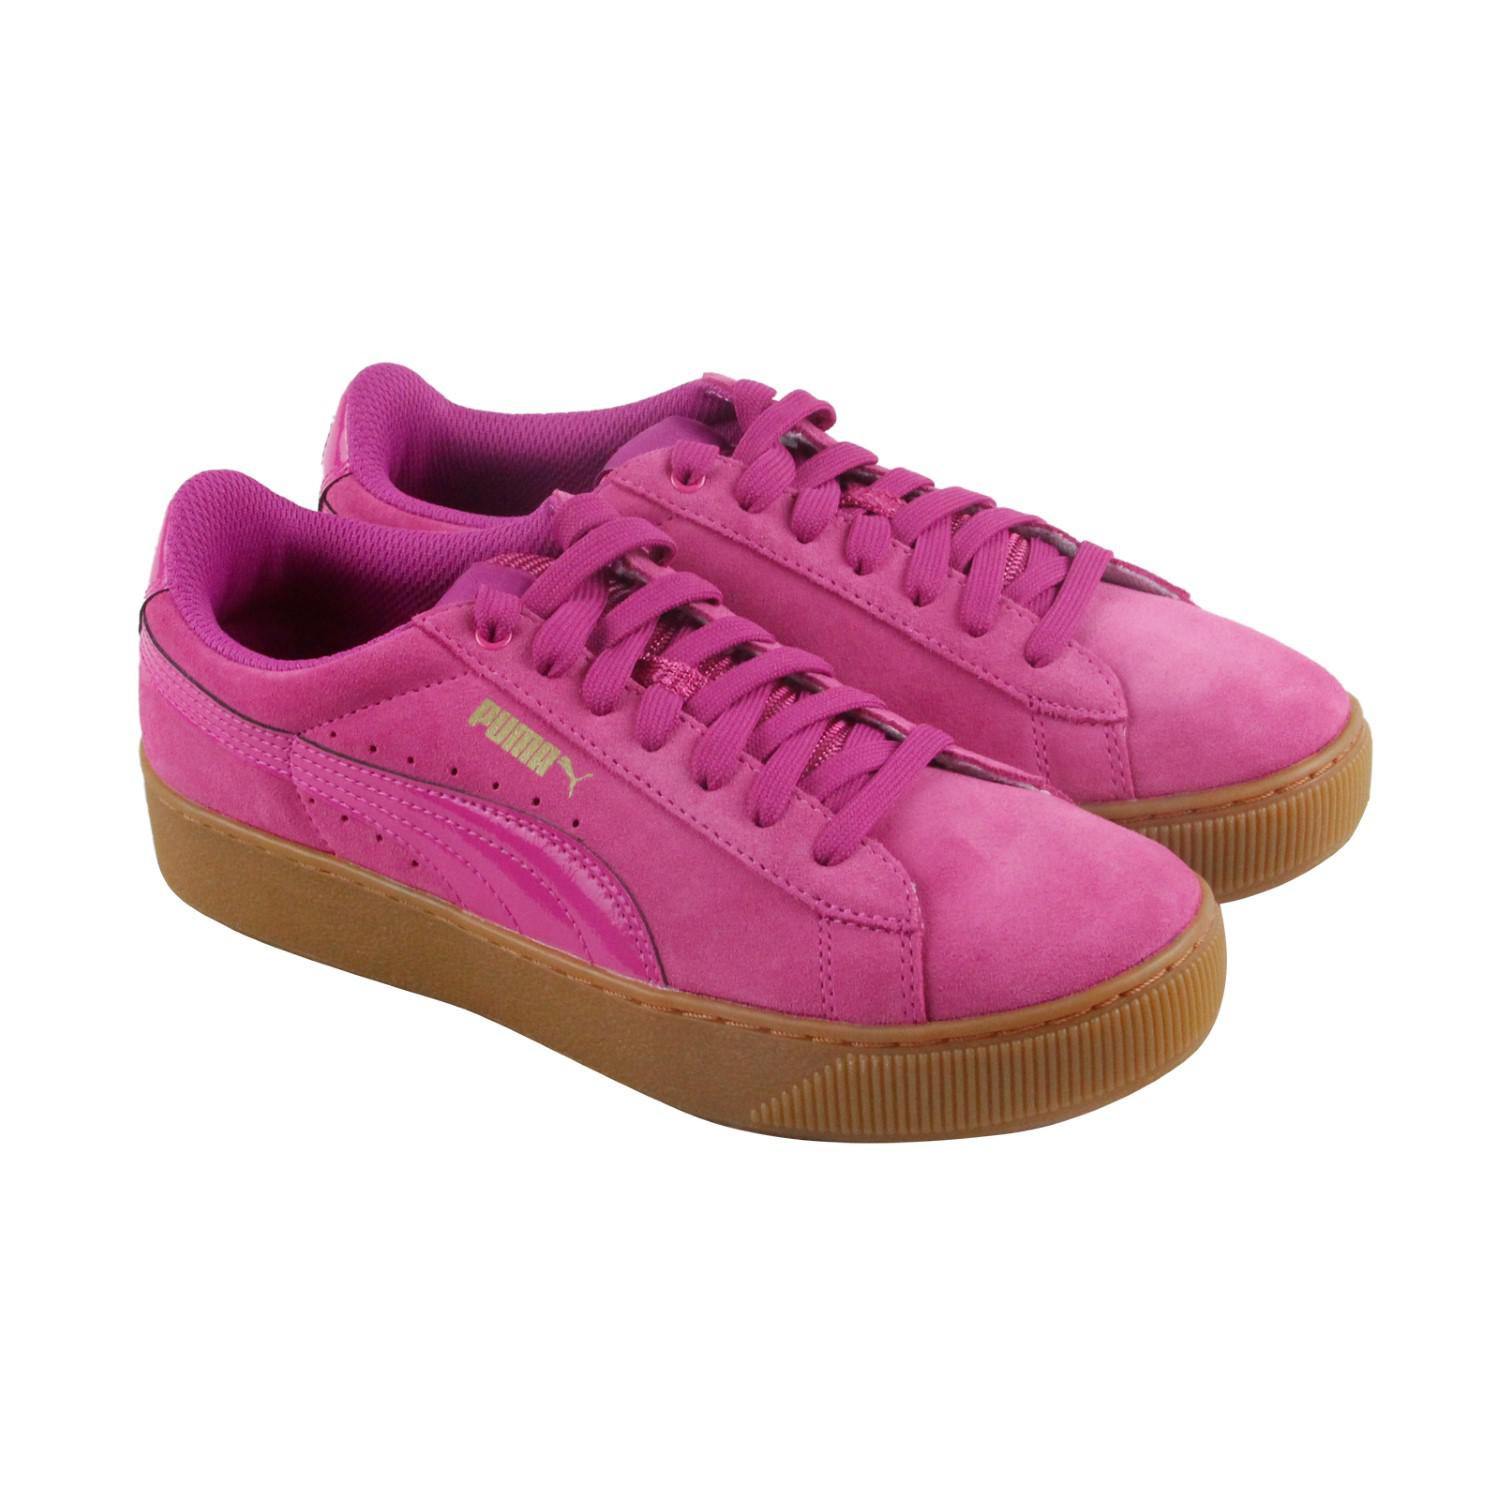 39d99f09f31 Lyst - PUMA Vikky Platform Rose Violet Lace Up Sneakers in Pink